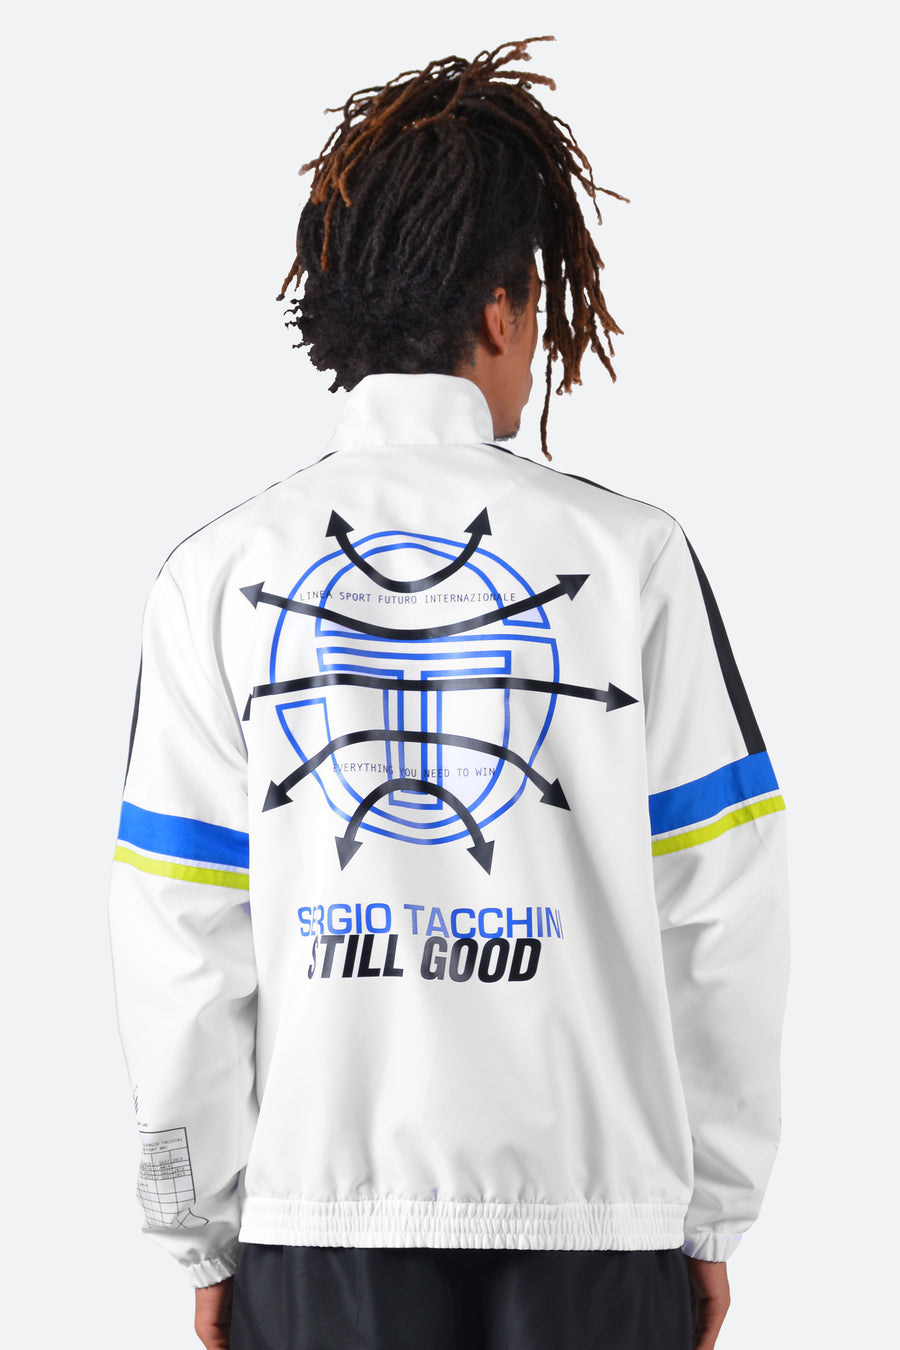 Still Good x Sergio Tacchini Cryo Track Jacket #White/Black